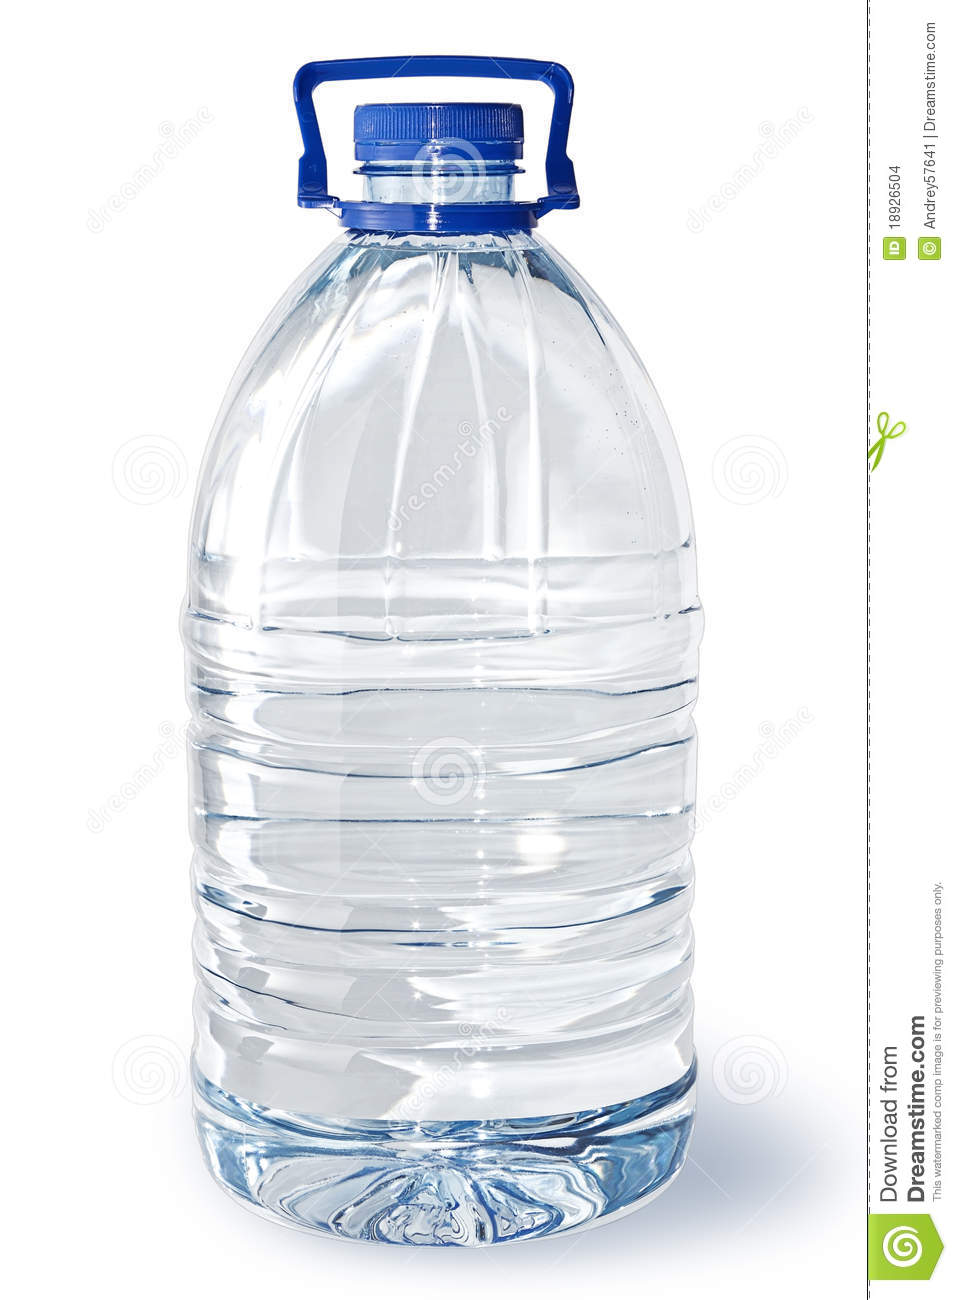 Five Liter Bottle Of Water Stock Photo Image Of Freshness